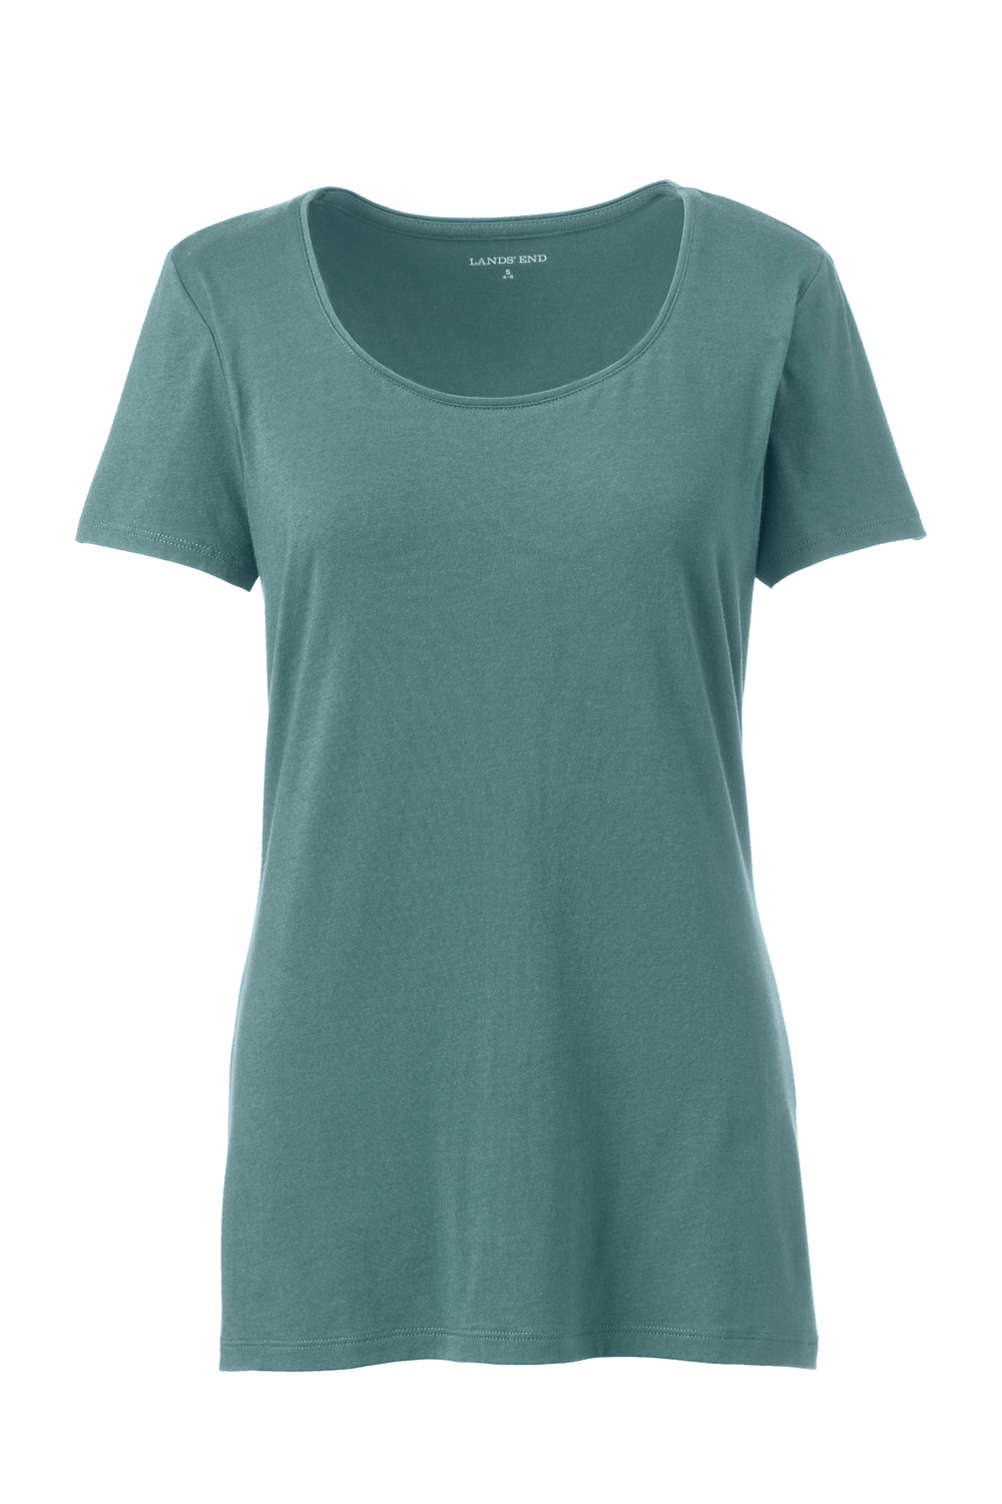 141ea5e65e6895 Women s Short Sleeve Shaped Layering Scoop Neck T-Shirt from Lands  End